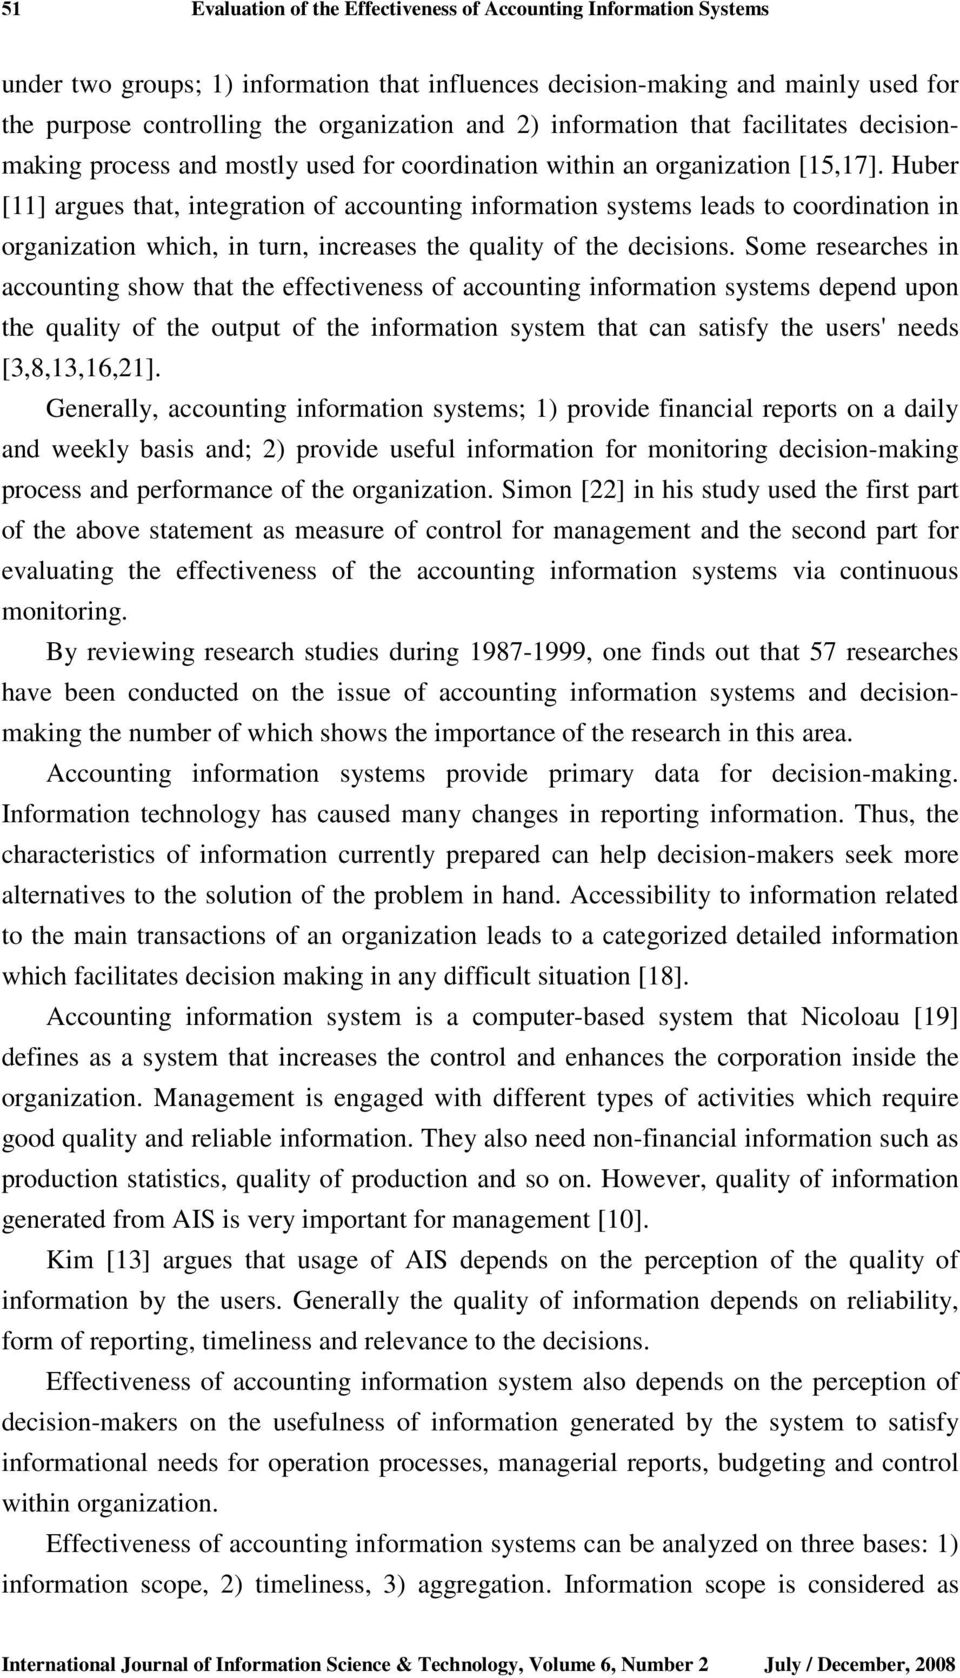 Huber [11] argues that, integration of accounting information systems leads to coordination in organization which, in turn, increases the quality of the decisions.